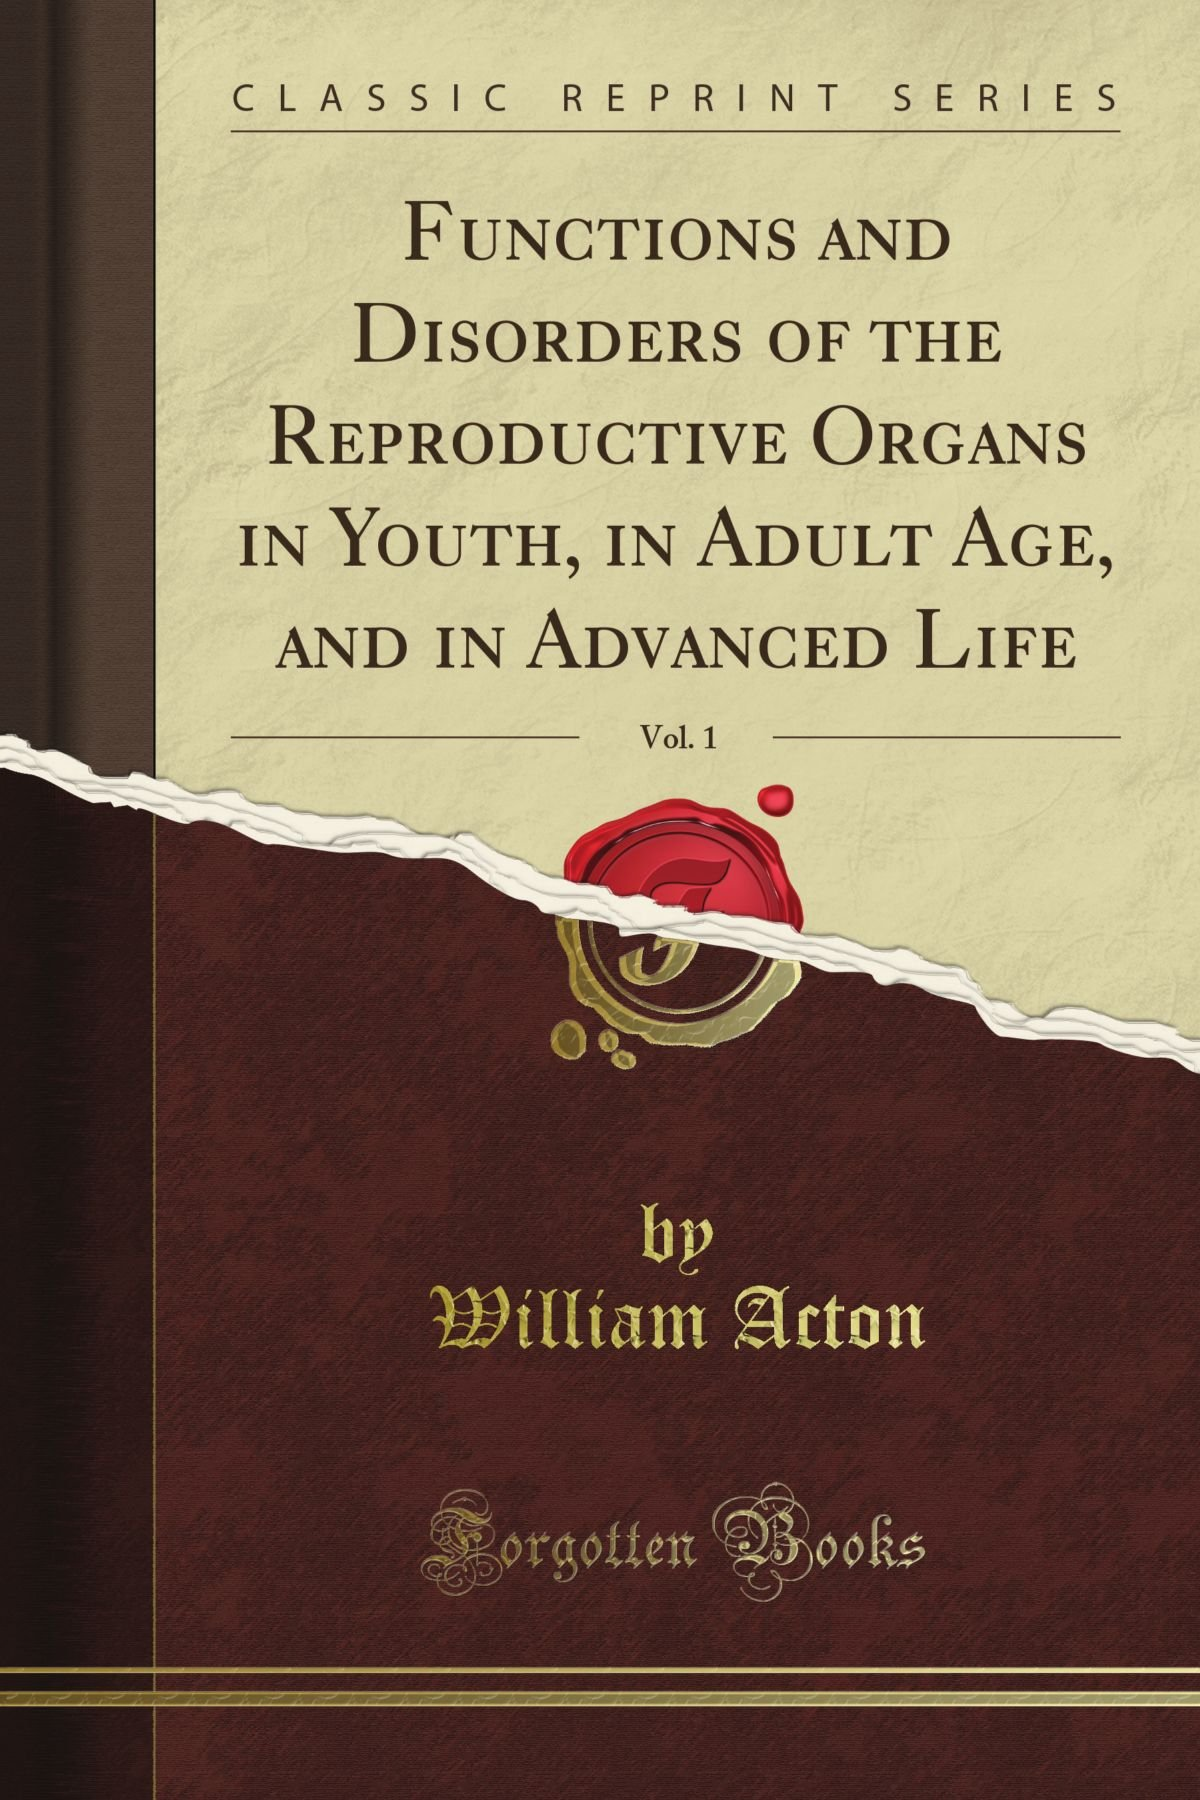 Functions and Disorders of the Reproductive Organs in Youth, in Adult Age, and in Advanced Life, Vol. 1 (Classic Reprint) pdf